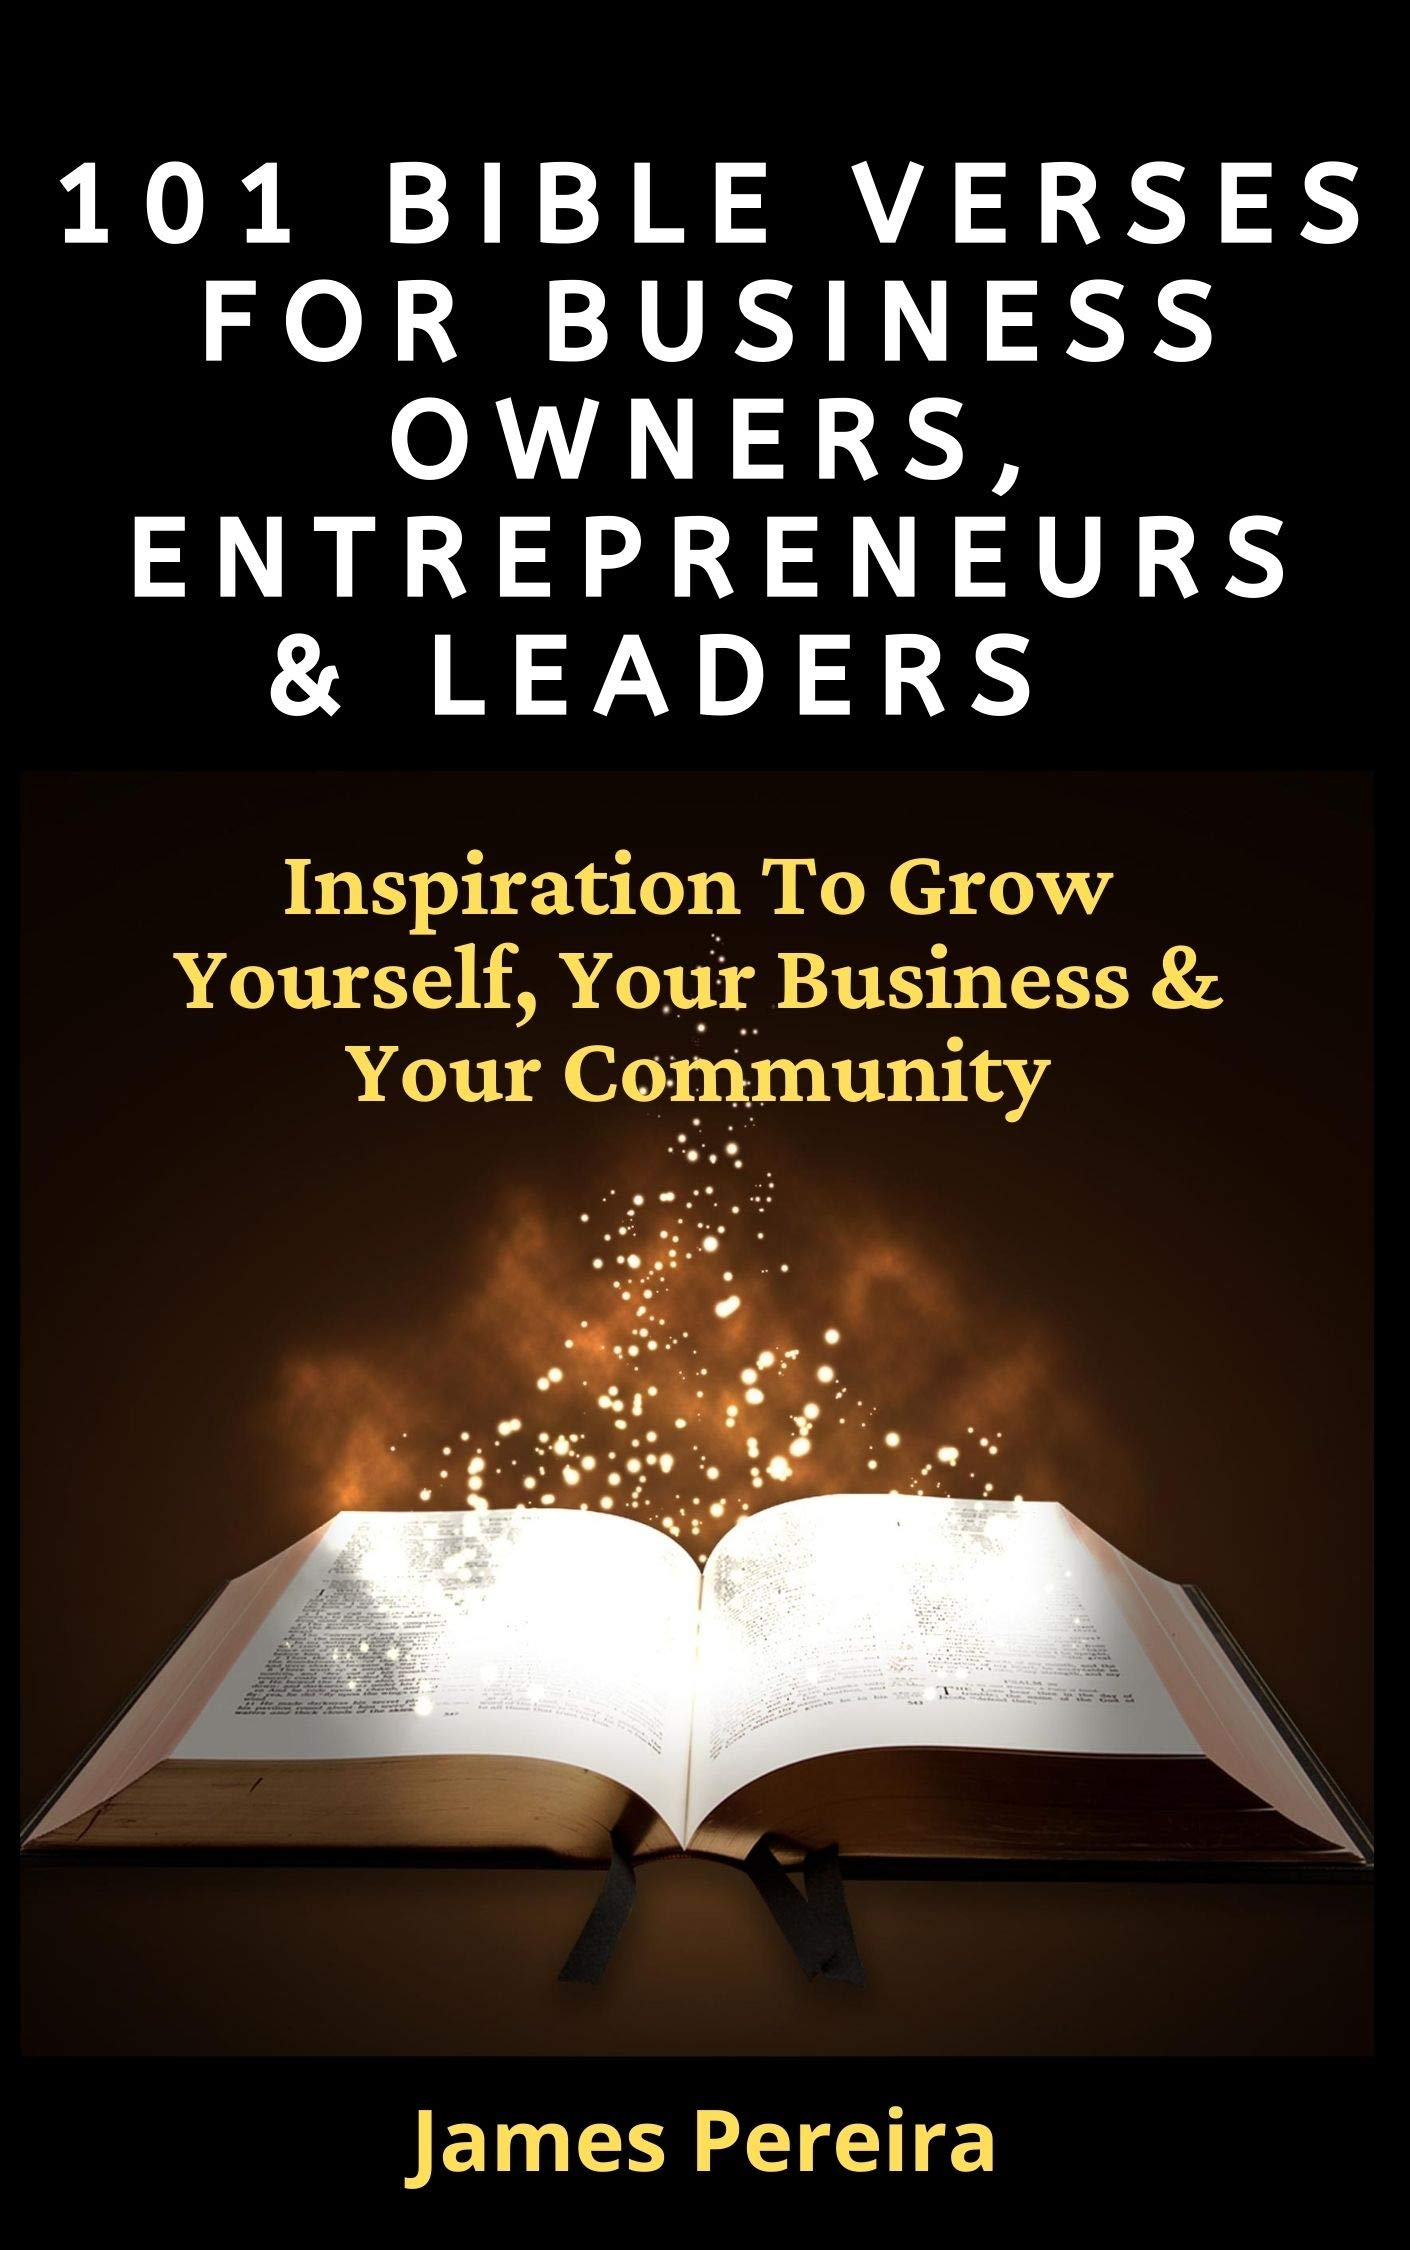 101 Bible Verses for Business Owners, Entrepreneurs & Leaders: Inspiration to Grow Yourself, Your Business & Your Community